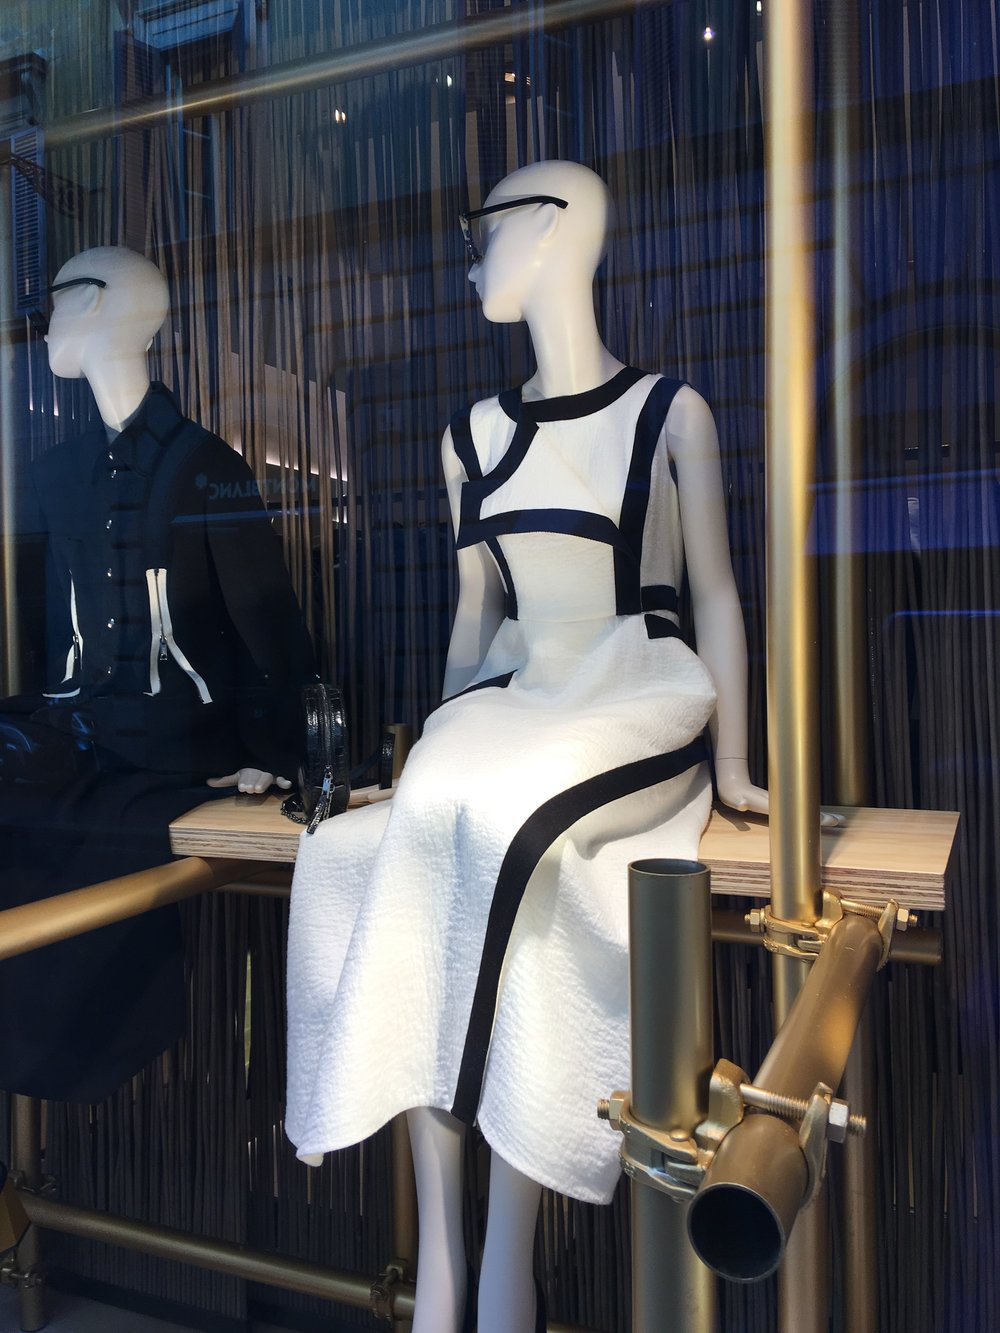 Max Mara window display in Rome, near the Spanish Steps